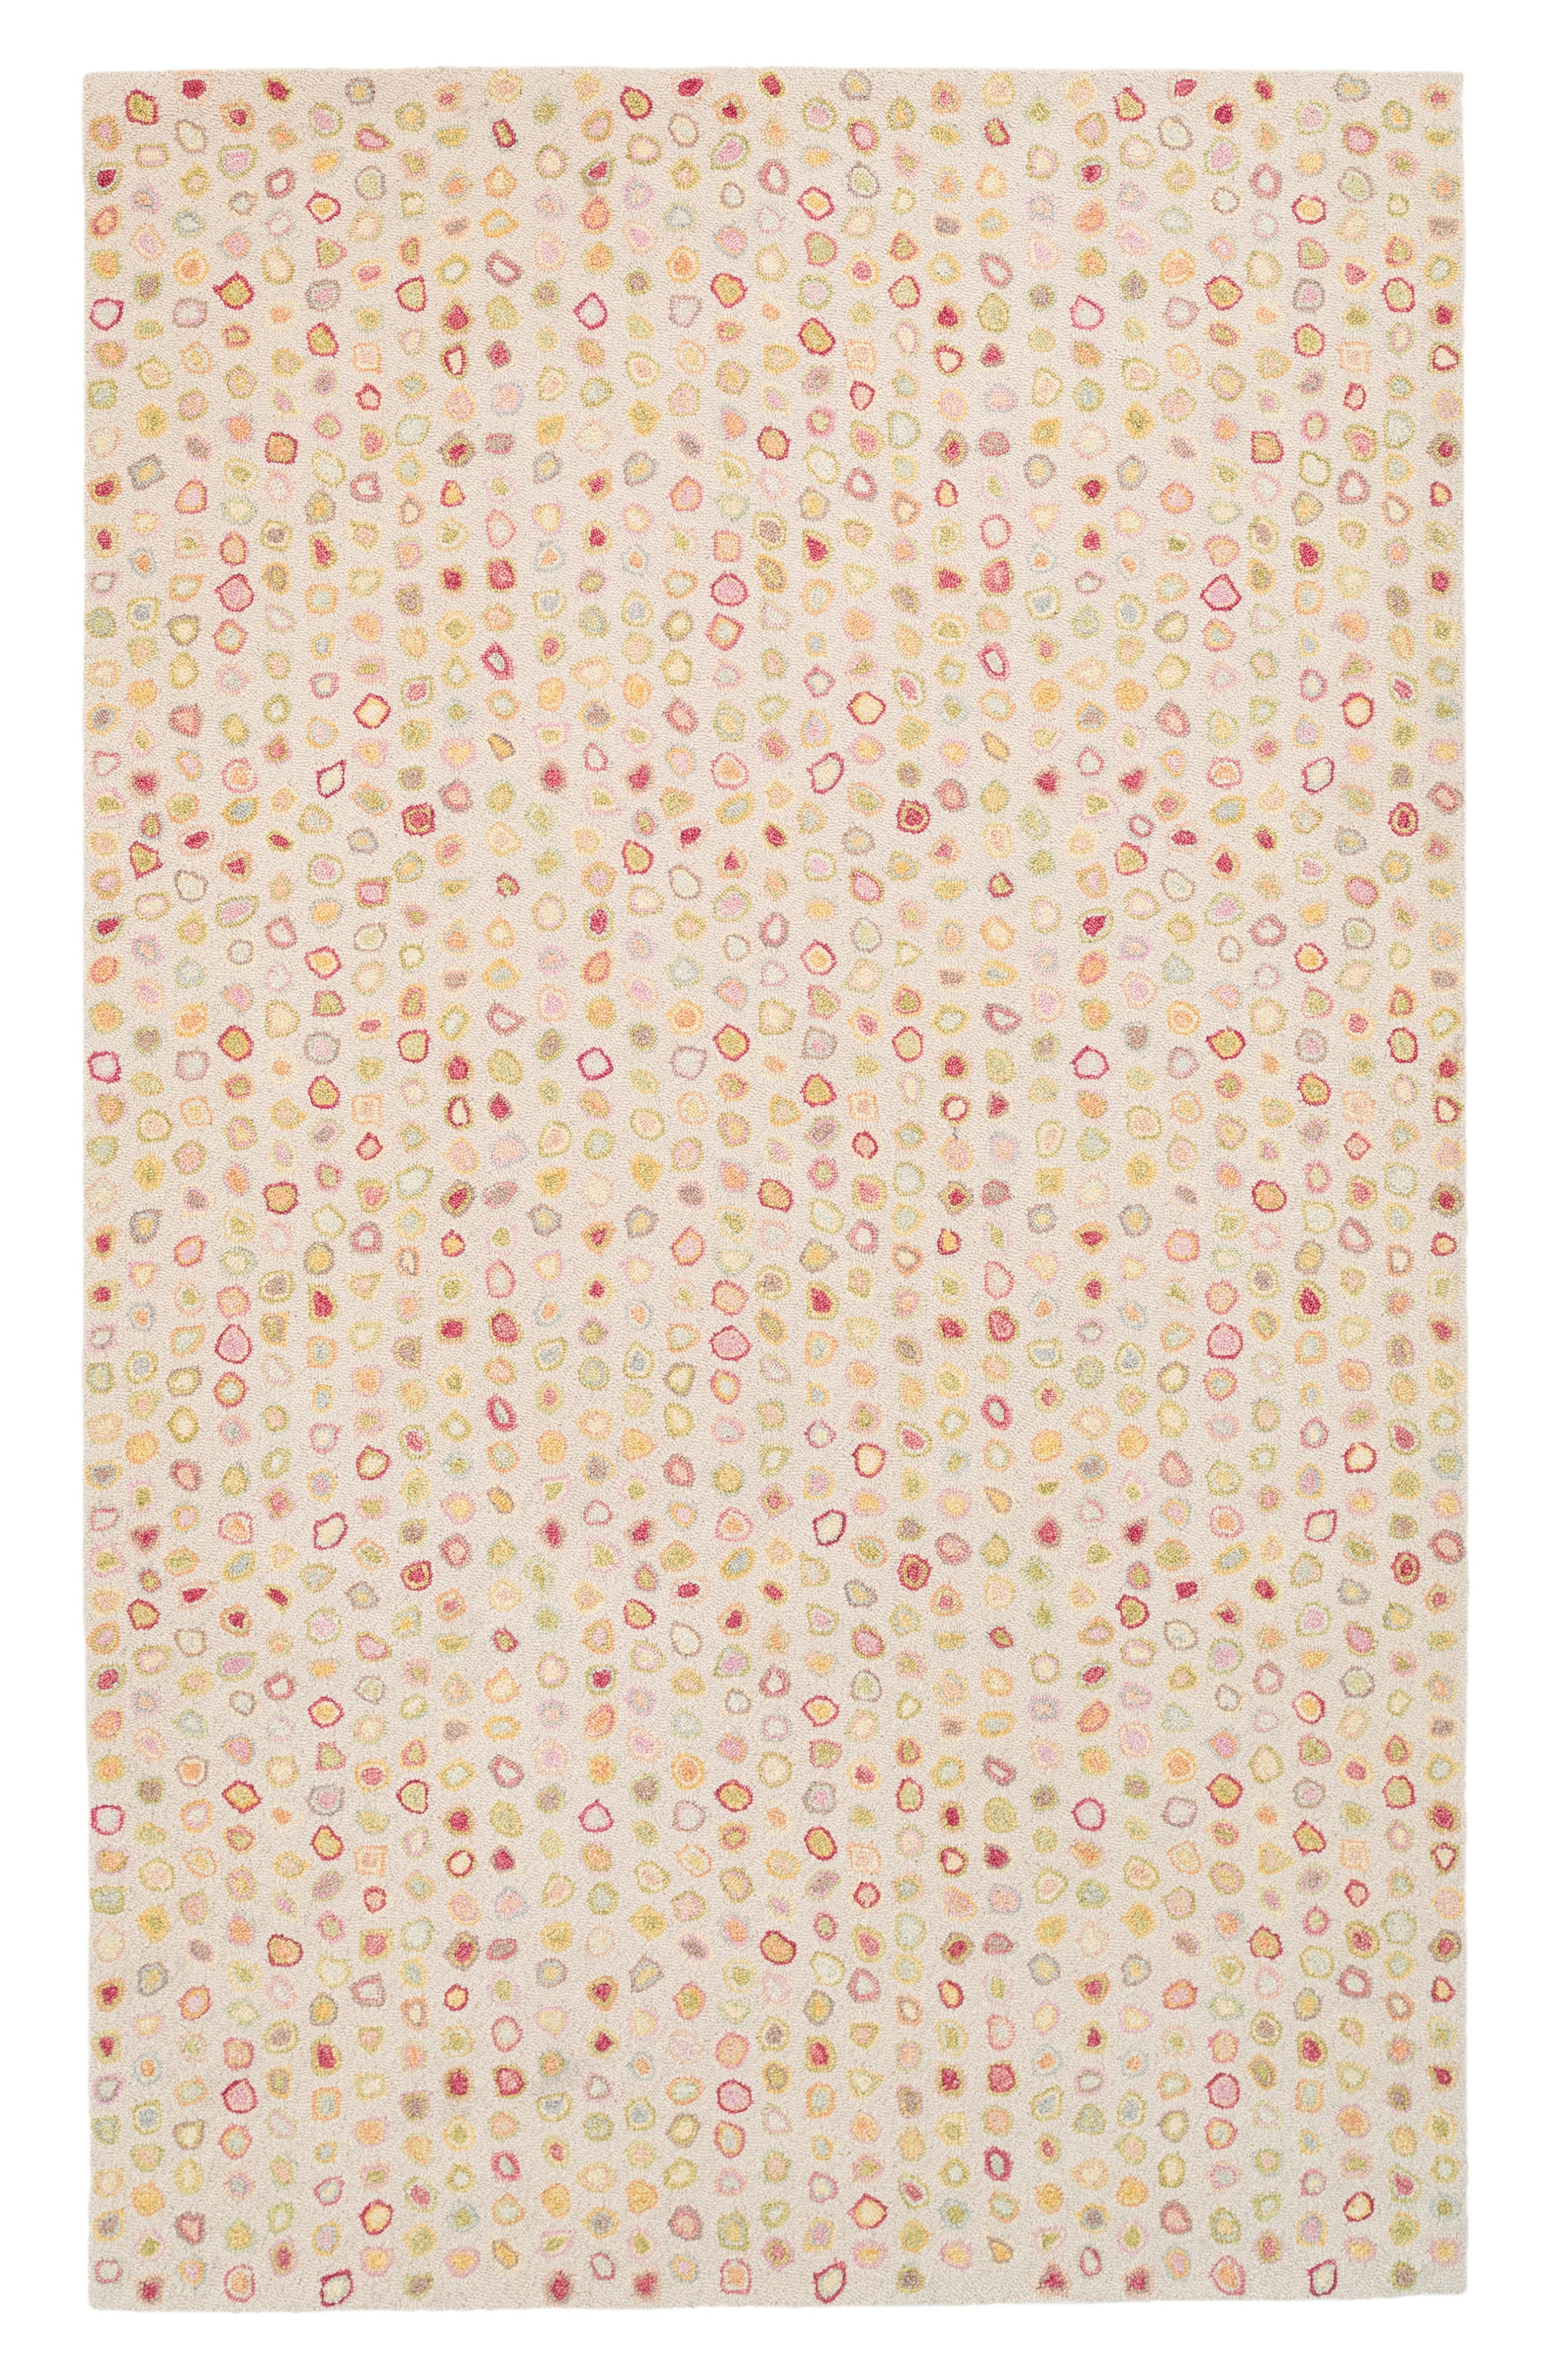 Cat's Paw Pastel Wool Rug,                         Main,                         color, PINK